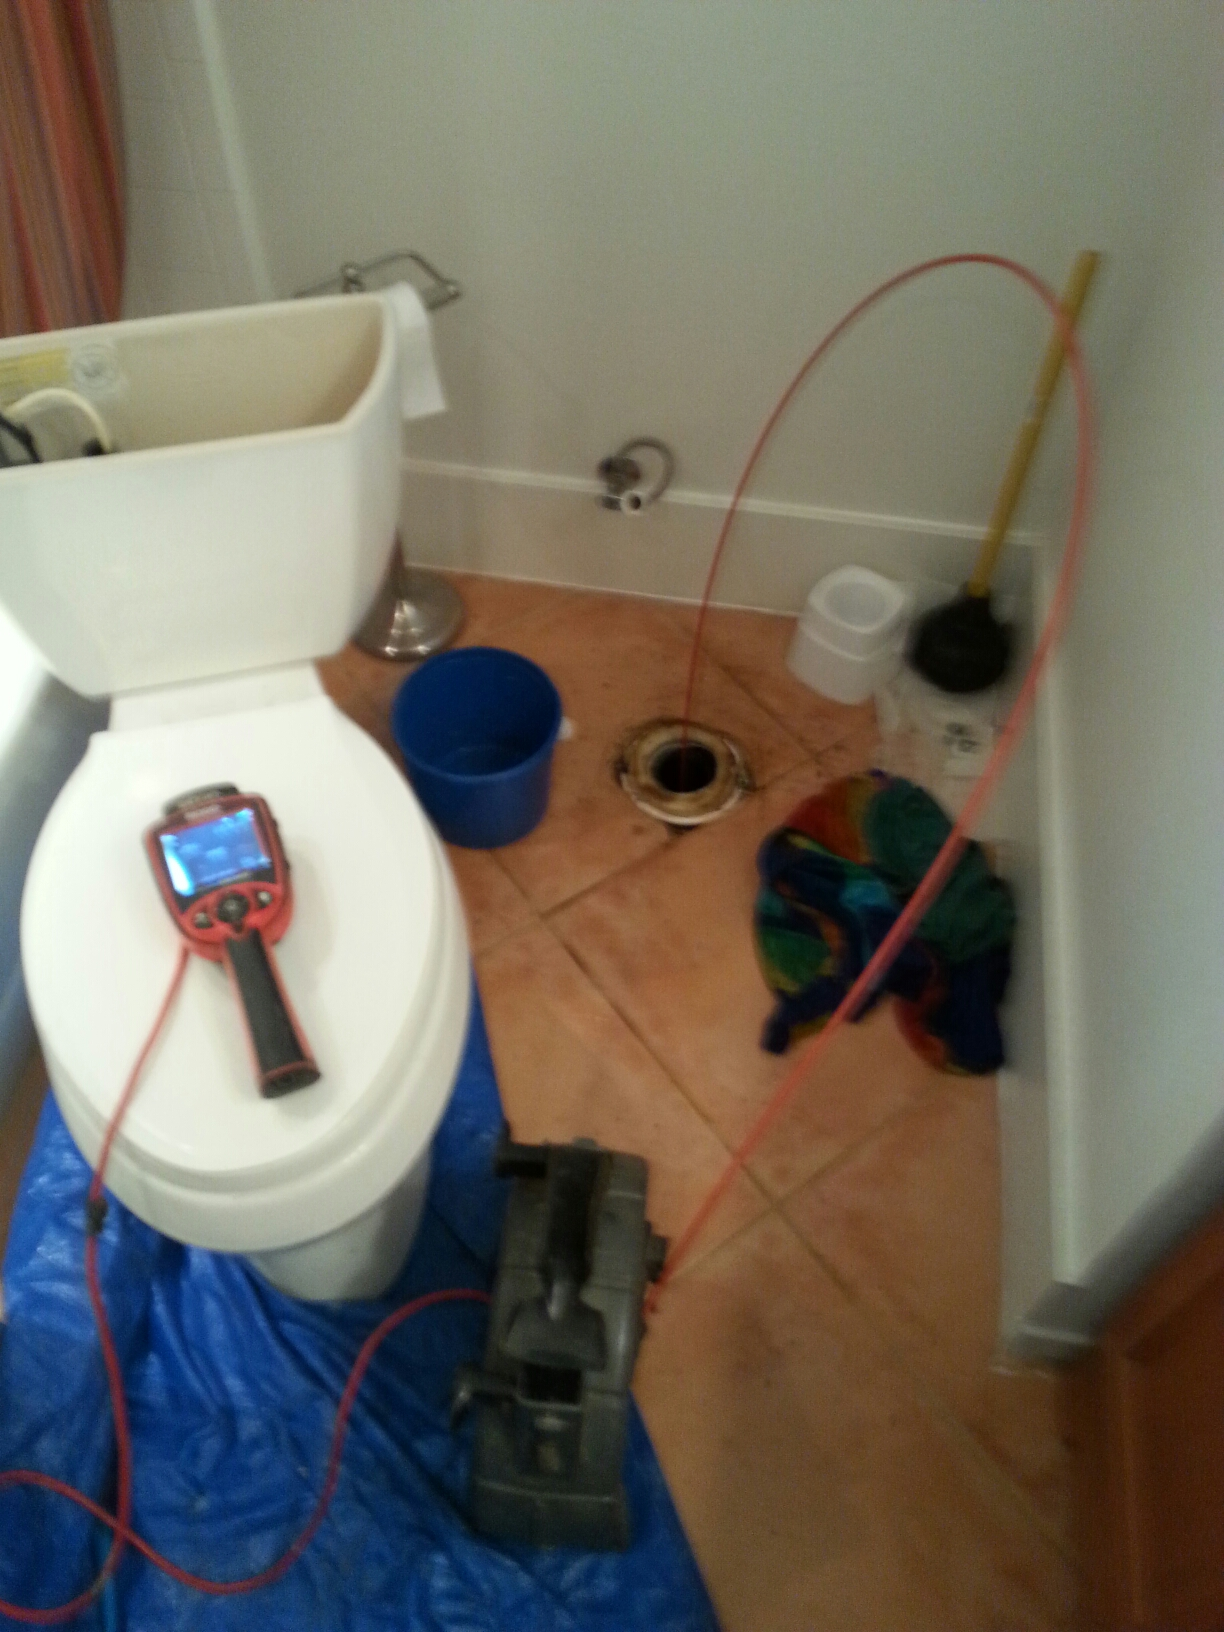 Rio Linda, CA - Rio linda instalation of two Kohler toilets and repair on a third toilet